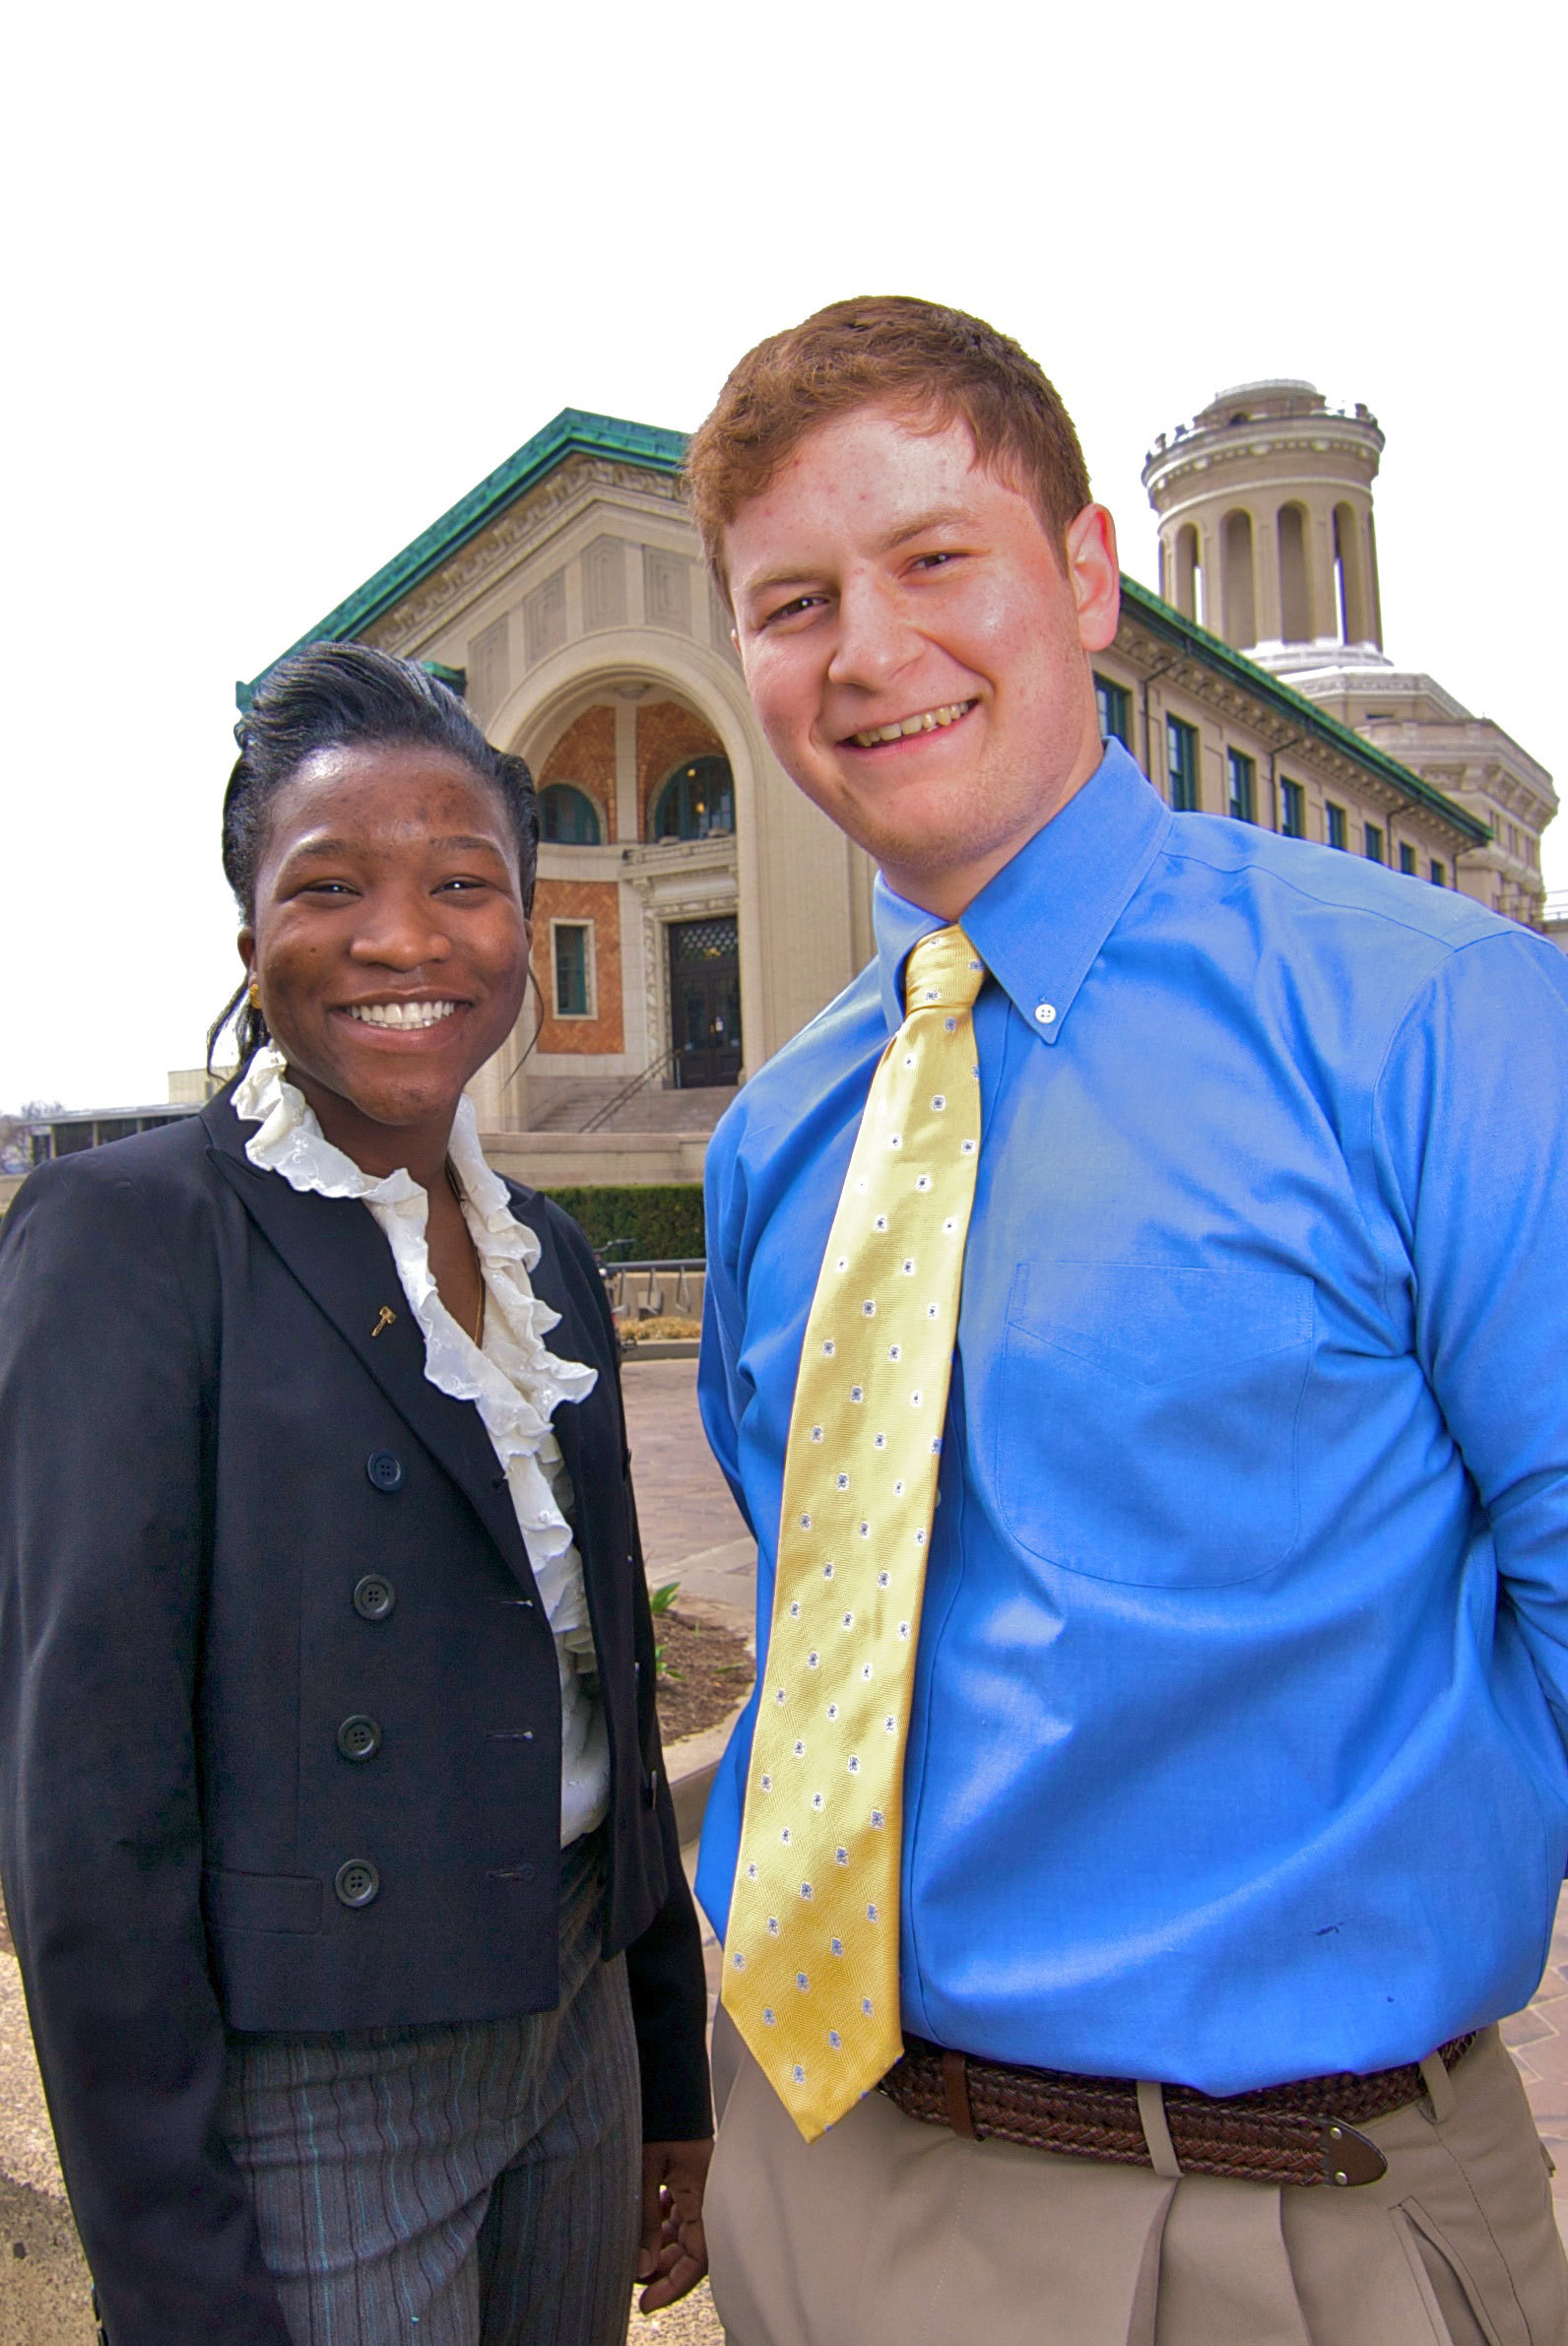 Rotimi Abimbola and Adam Klein are running for student body president and vice president. (credit: Joshua Debner/Photo Staff)